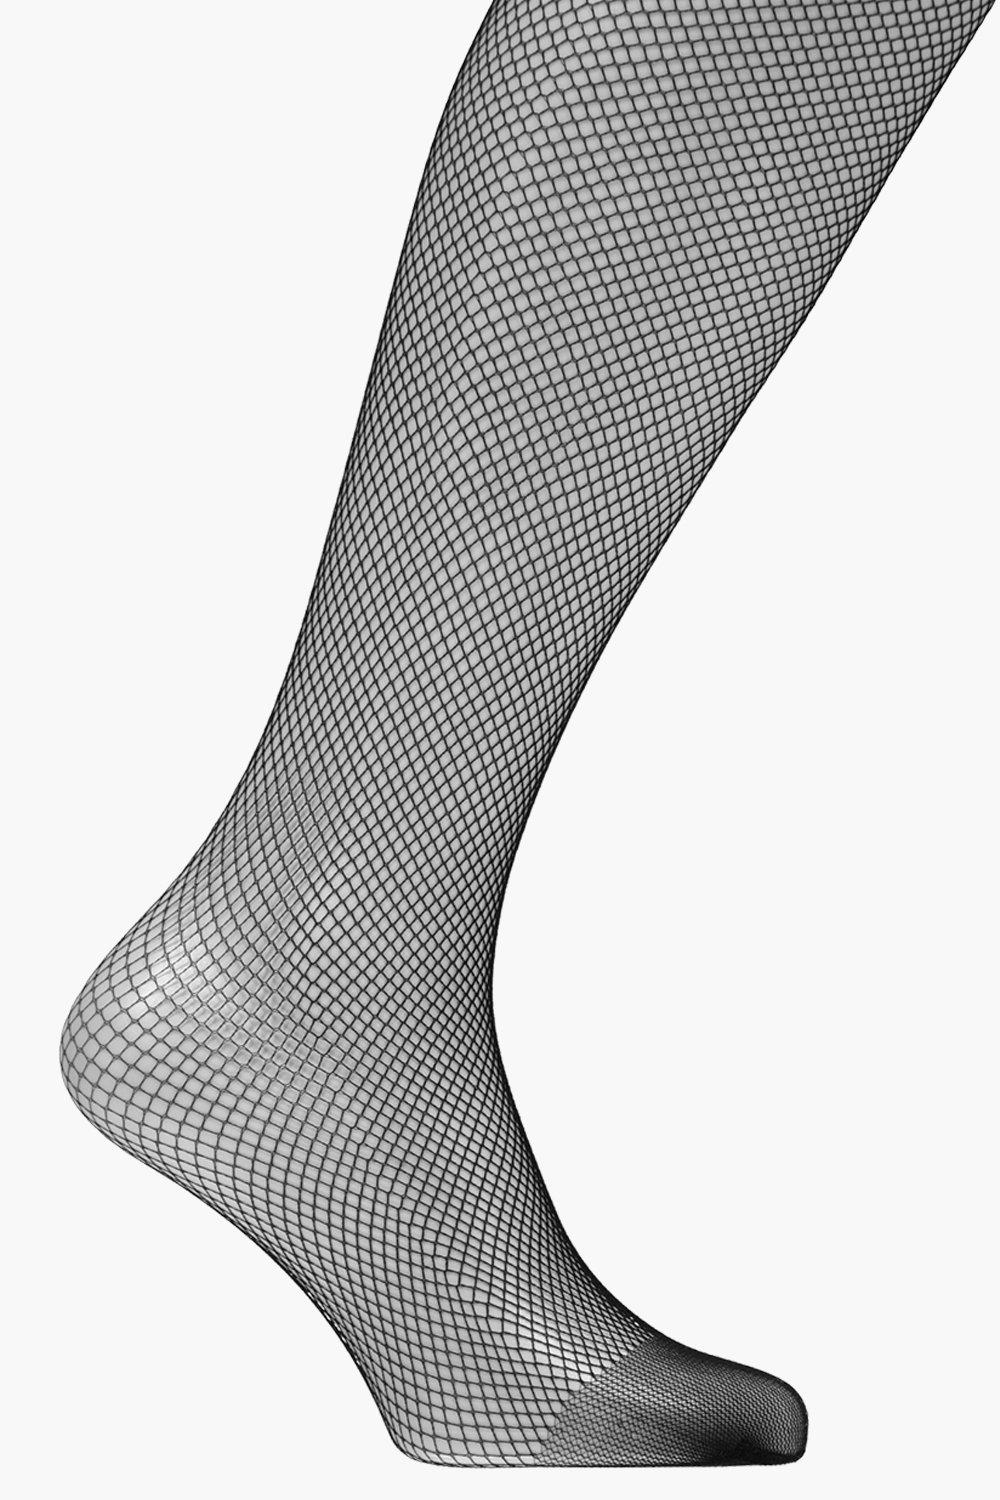 Maddison Small Scale Fishnet Tights